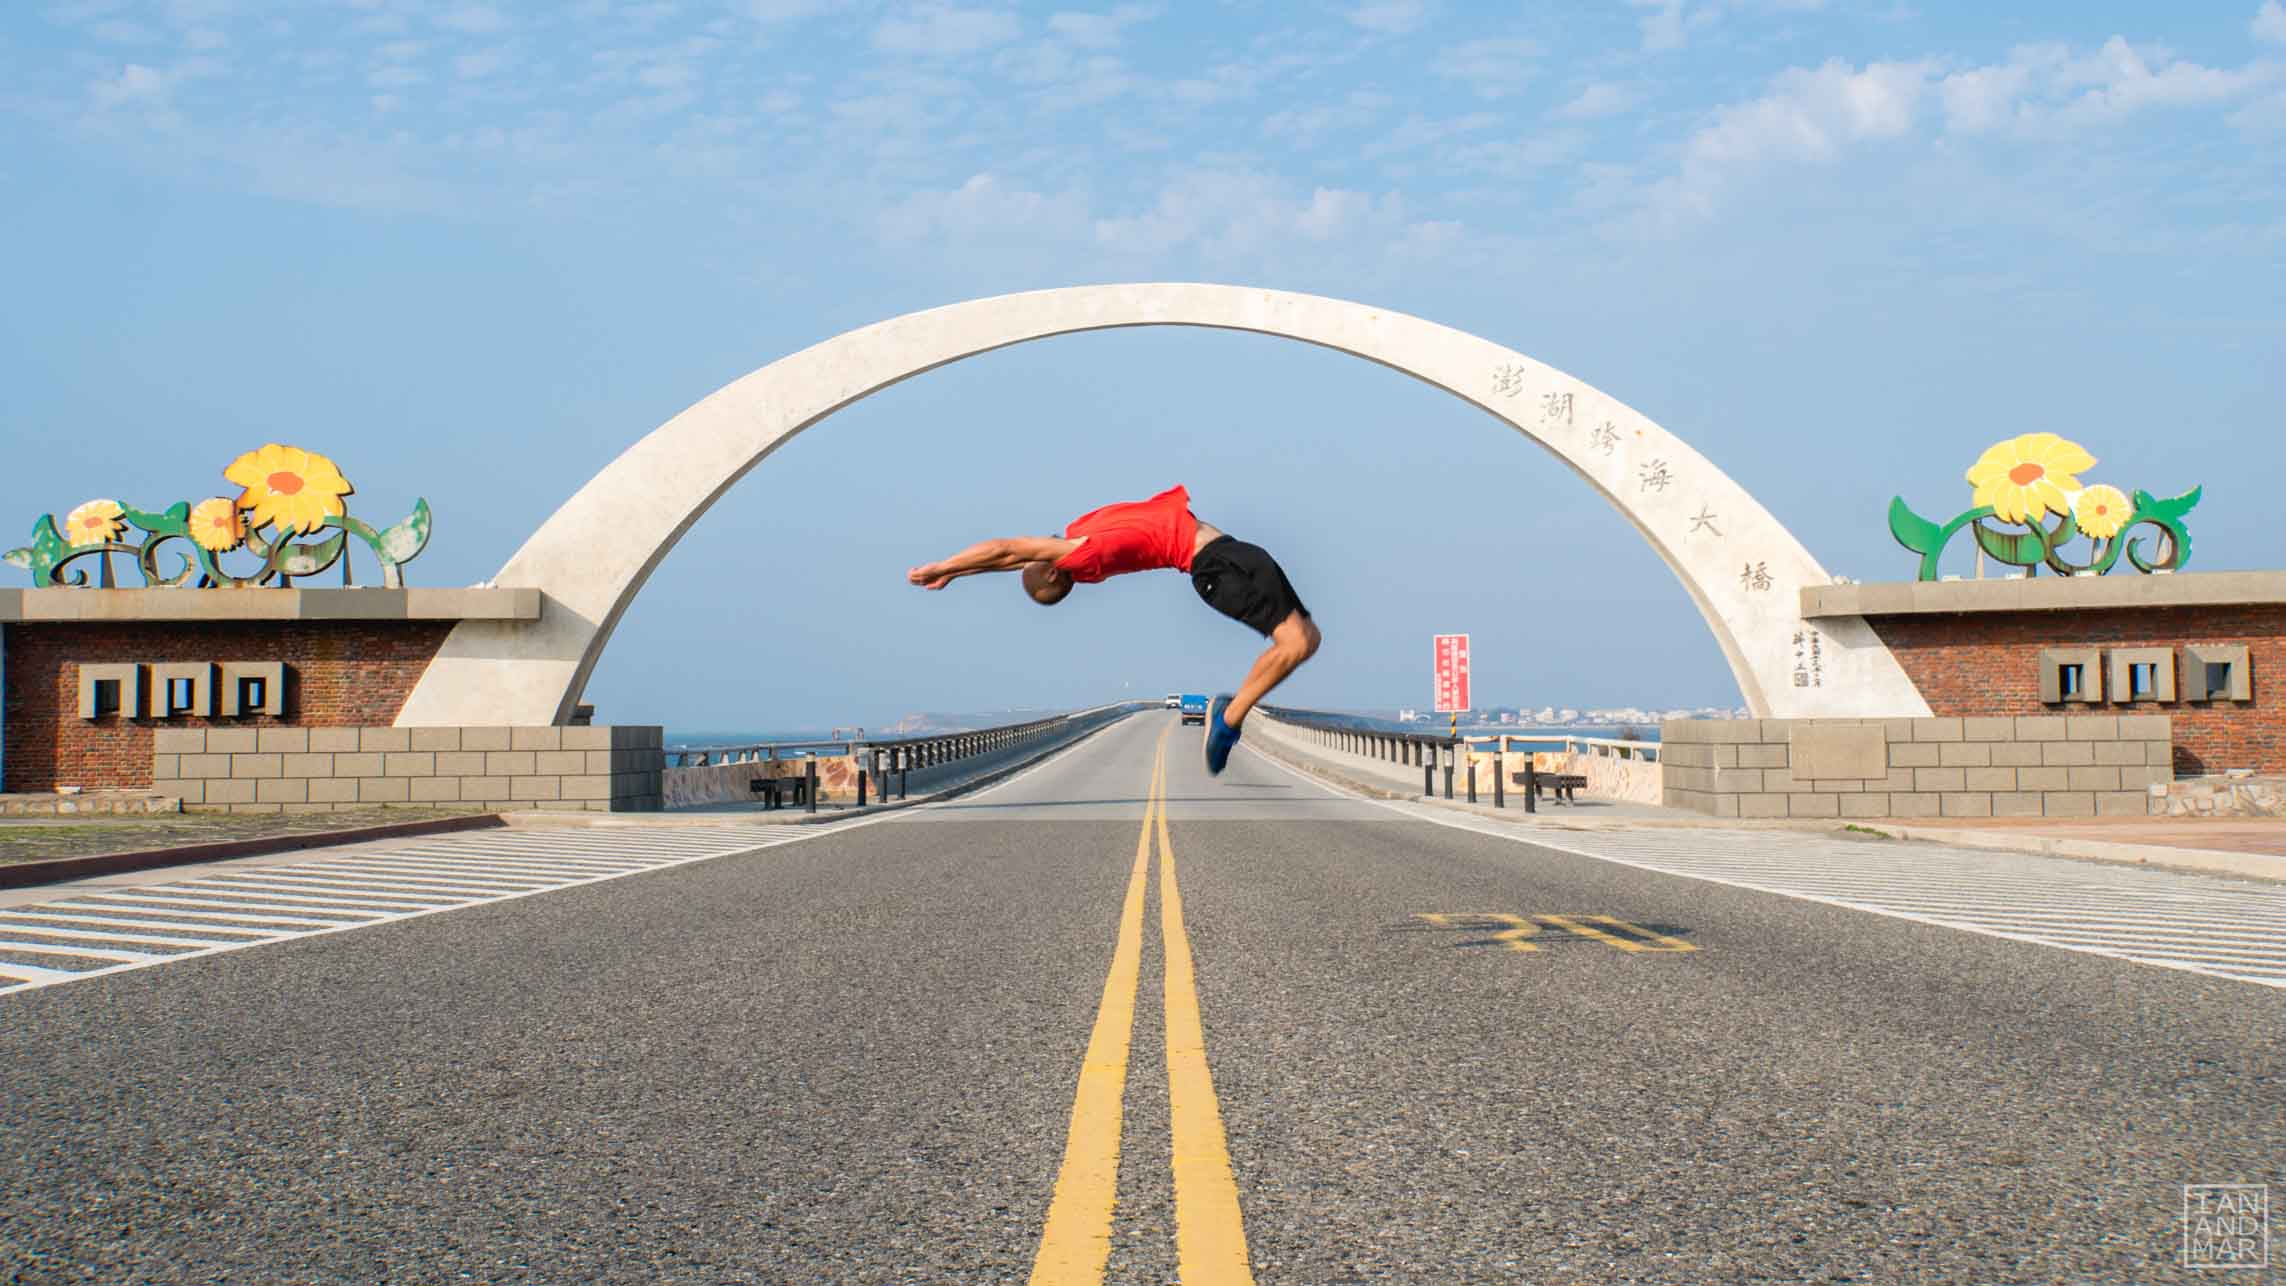 man doing a backflip in the middle of the road